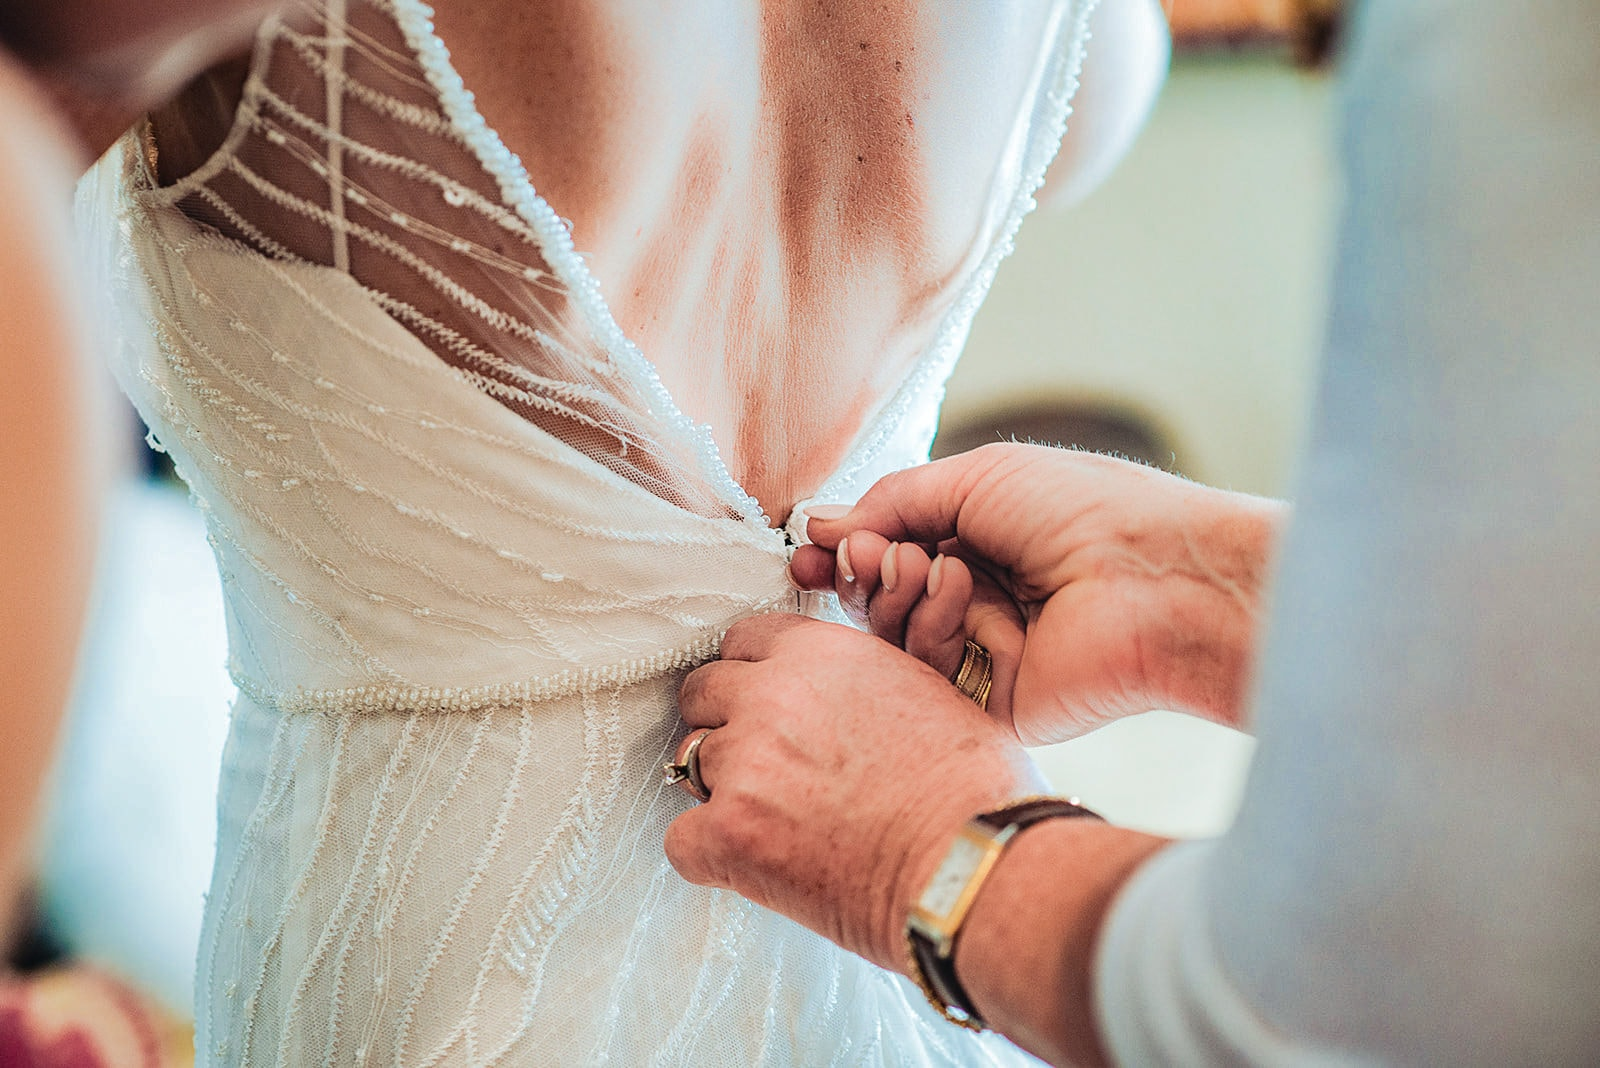 Mum fastening the bride's bead and lace wedding dress